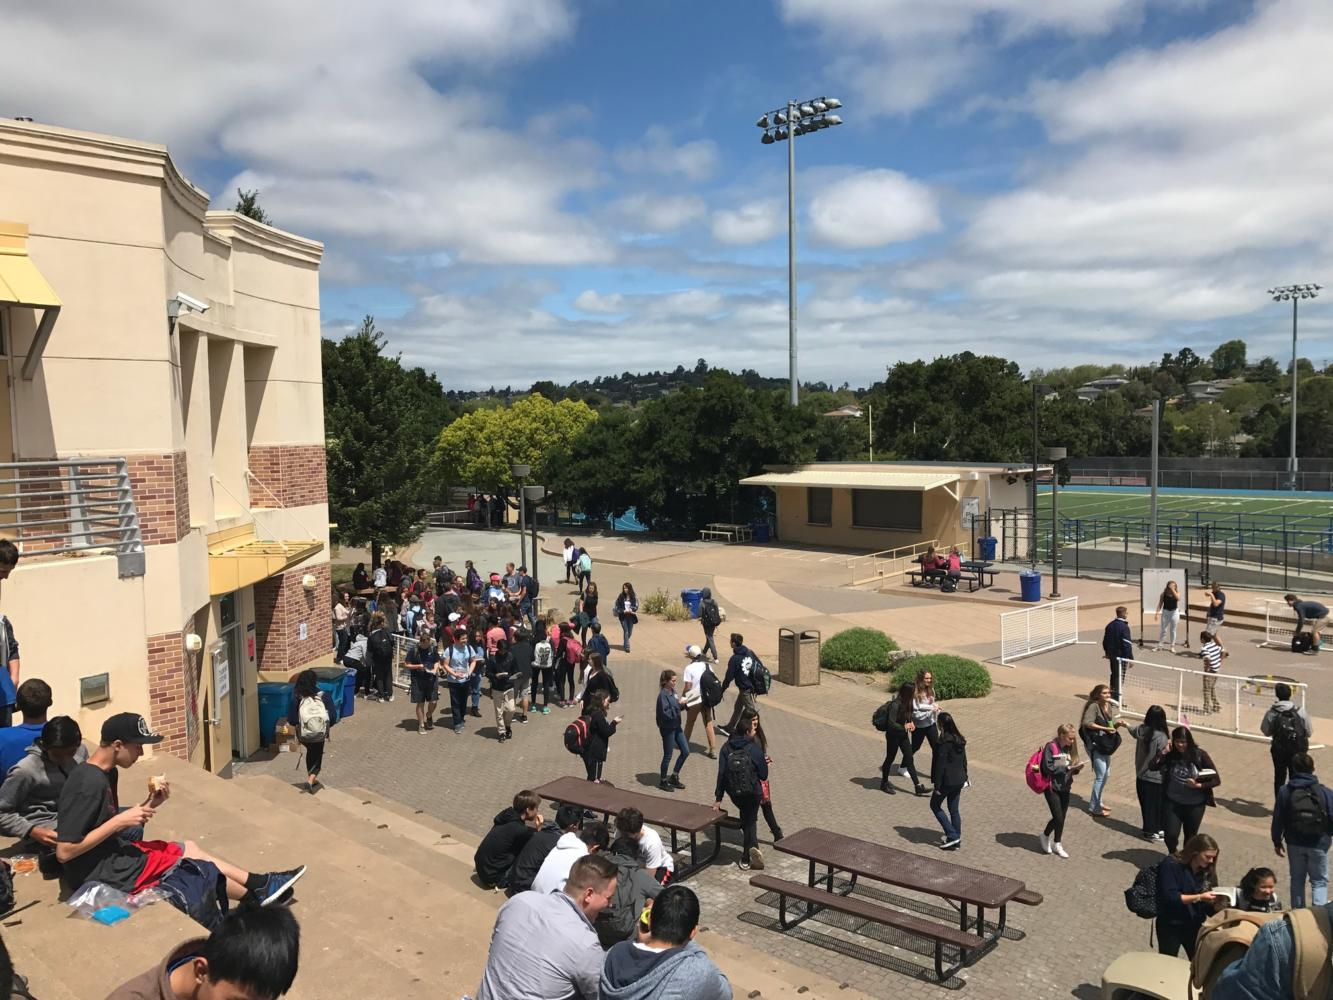 At Carlmont High School, many students participate in the many clubs that are available, ranging from all different interests and purposes.